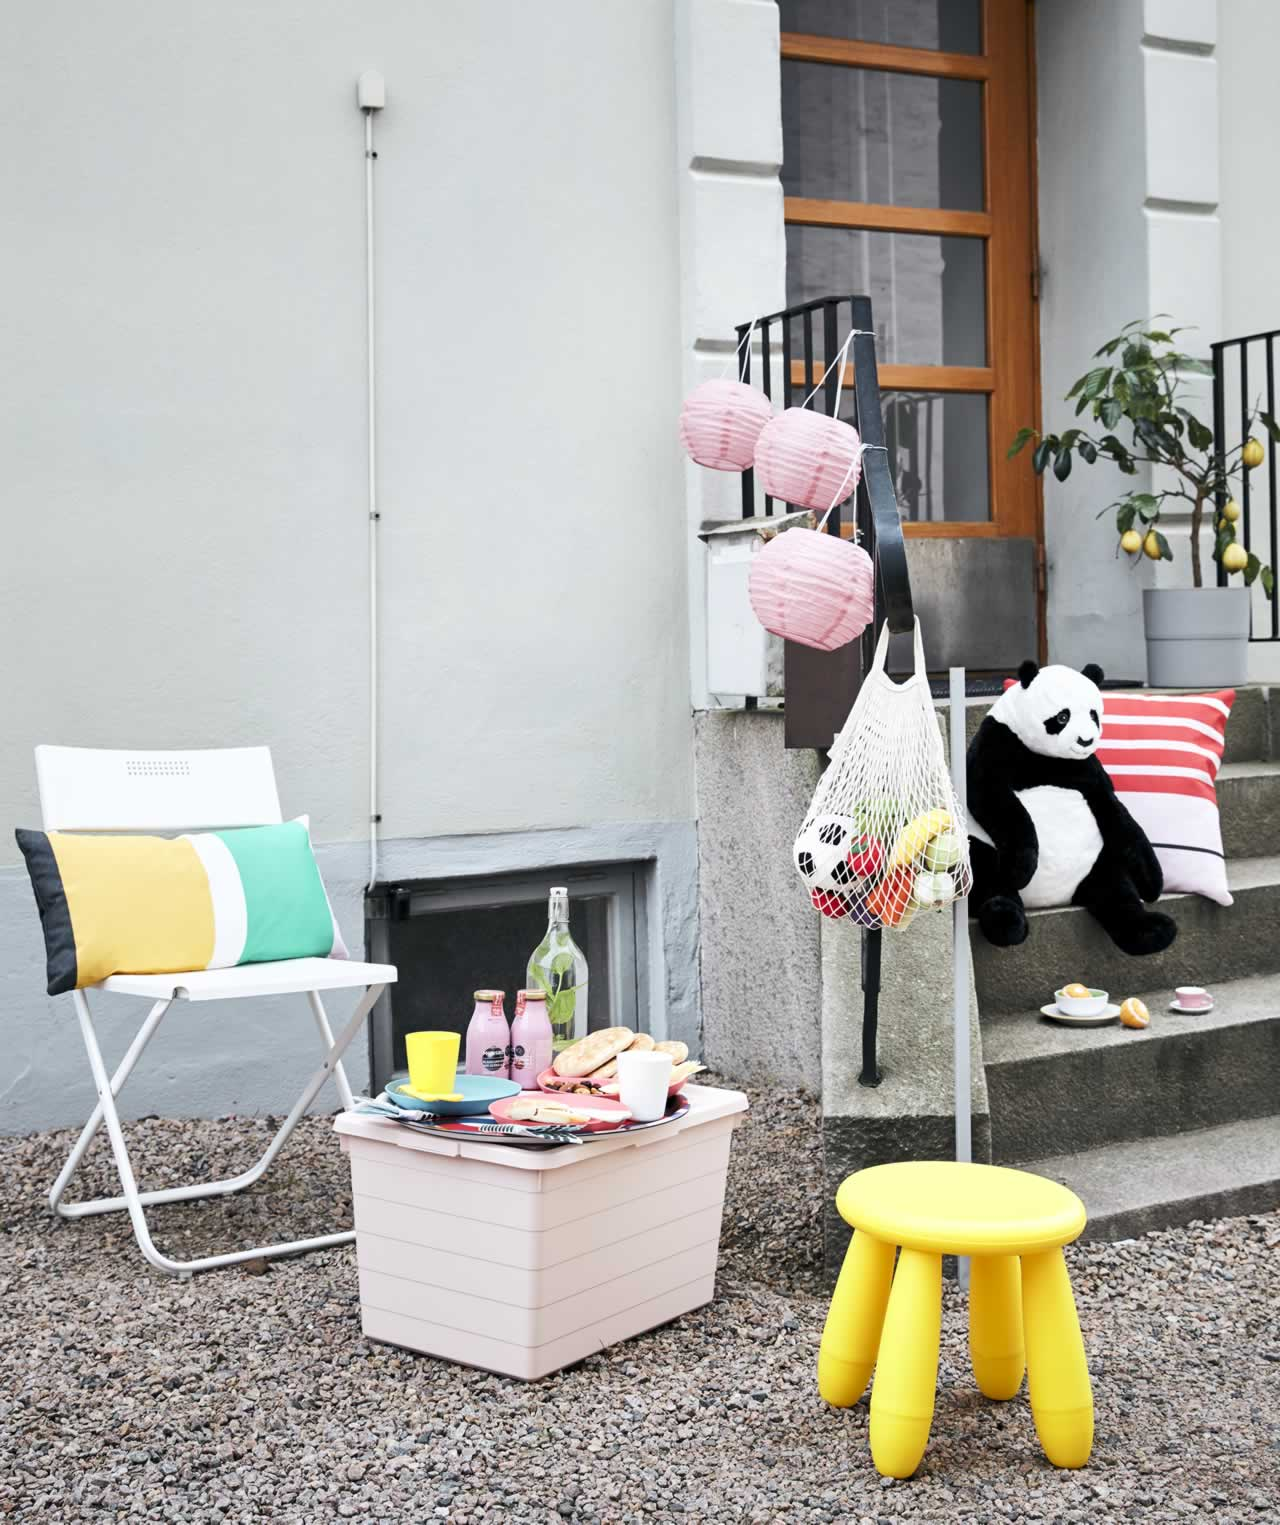 IKEA Ideas - Create your own pop-up garden in the city